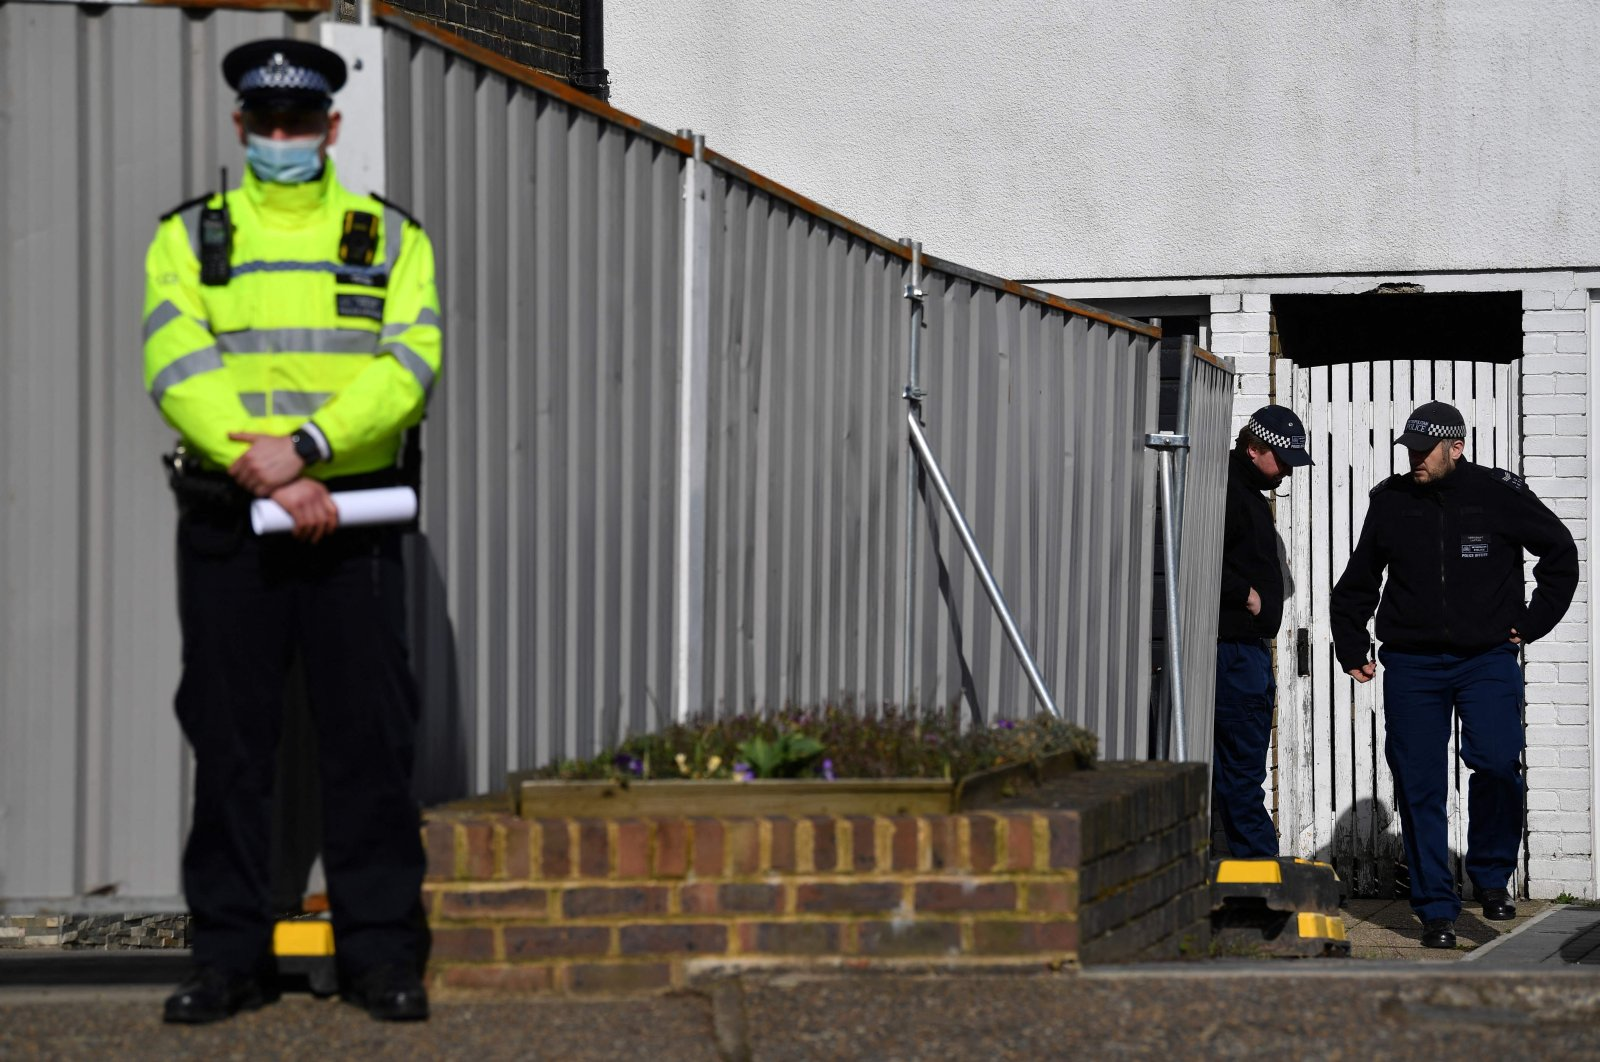 A police officer stands guard at a temporary police barrier around the home of a murder suspect after the discovery of human remains on the grounds of Great Chart Golf and Leisure near Ashford, Deal, Kent, England on March 11, 2021. (AFP Photo)